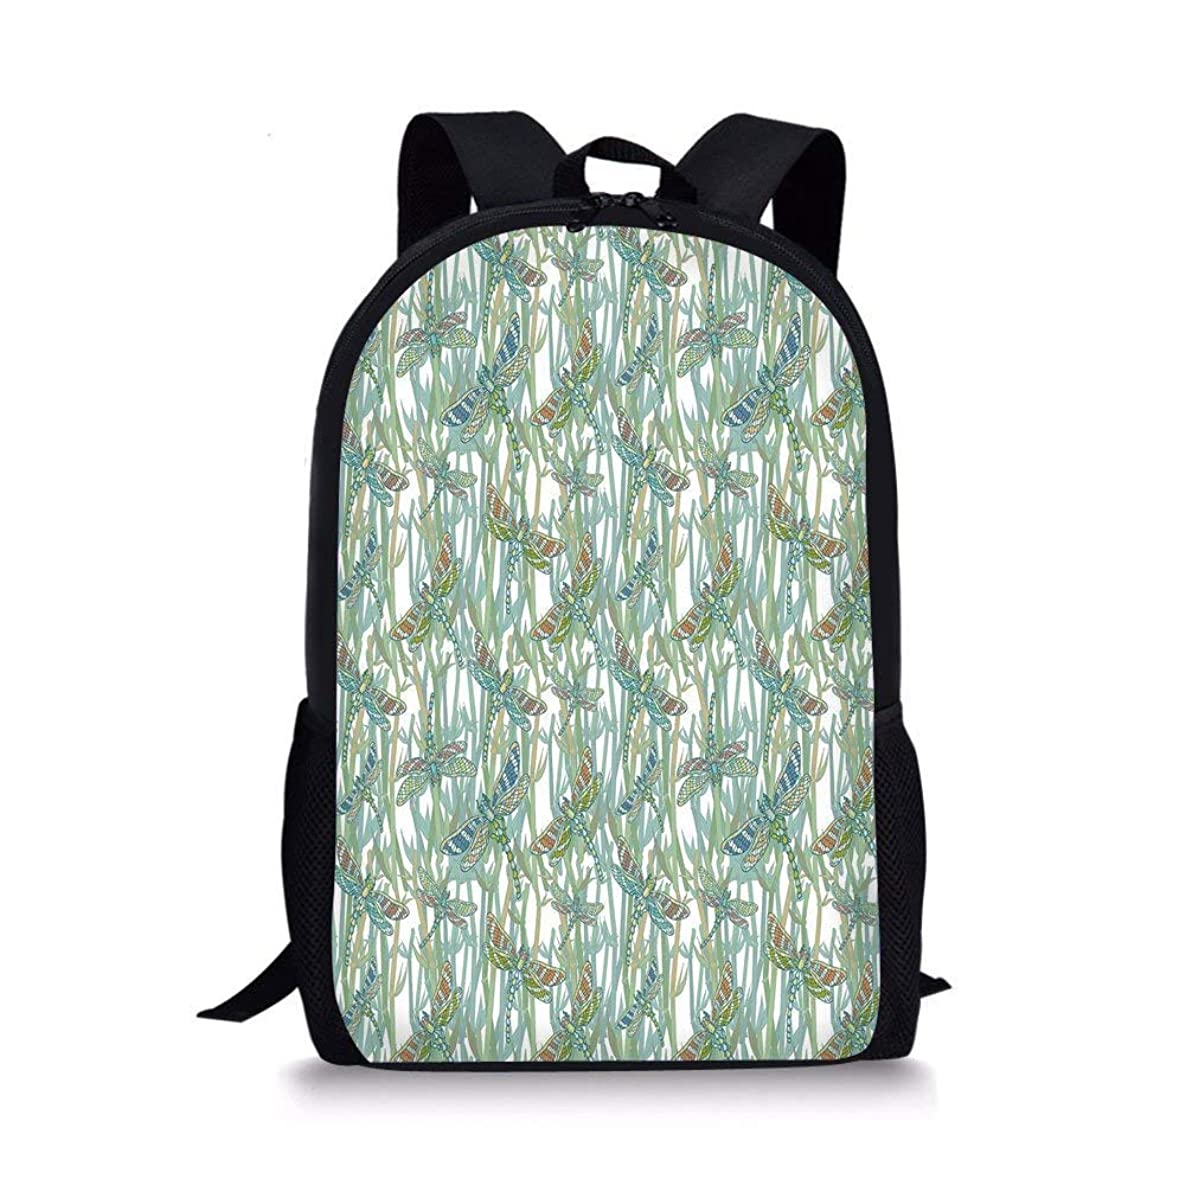 School Bags Dragonfly,Spiritual Design Flying Winged Creatures on the Lake Summer Exotic Graphic Art,Turquoise for Boys&Girls Mens Sport Daypack